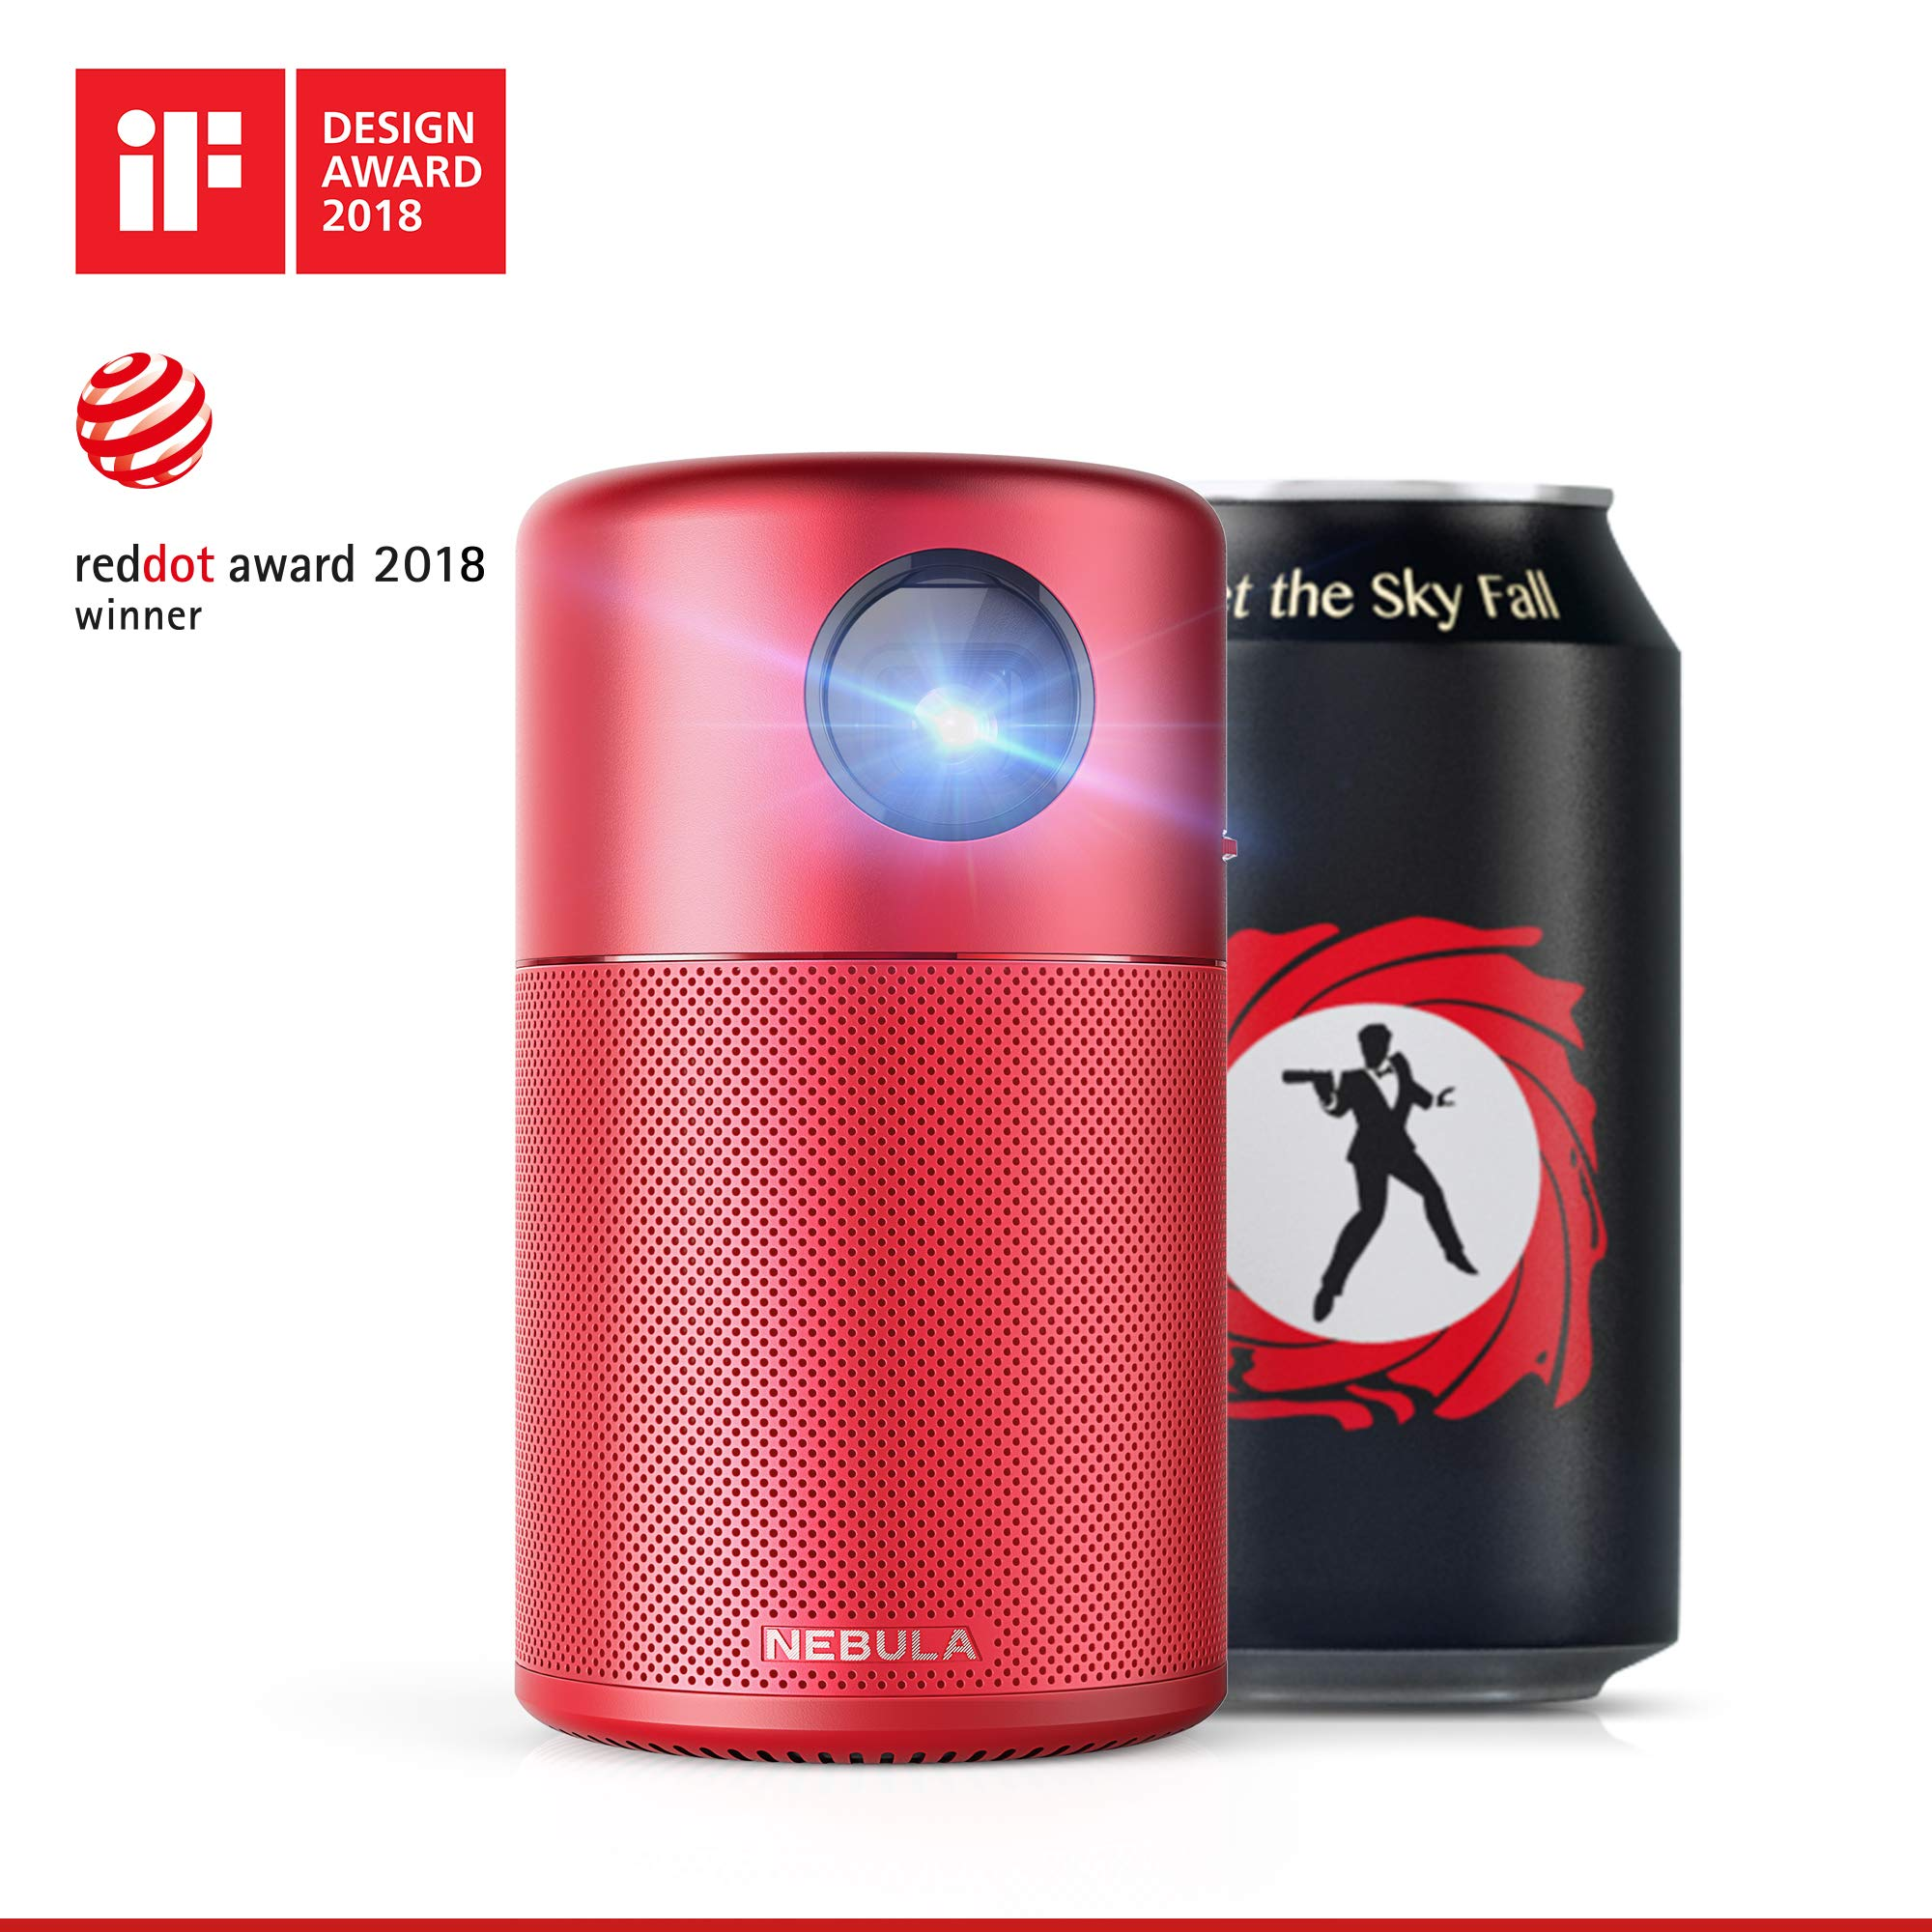 Nebula Capsule Smart Mini Projector, by Anker, Portable 100 ANSI lm High-Contrast Pocket Cinema with Wi-Fi, DLP, 360° Speaker, 100'' Picture, Android 7.1, 4-Hour Video Playtime, and App-Red by Anker (Image #2)